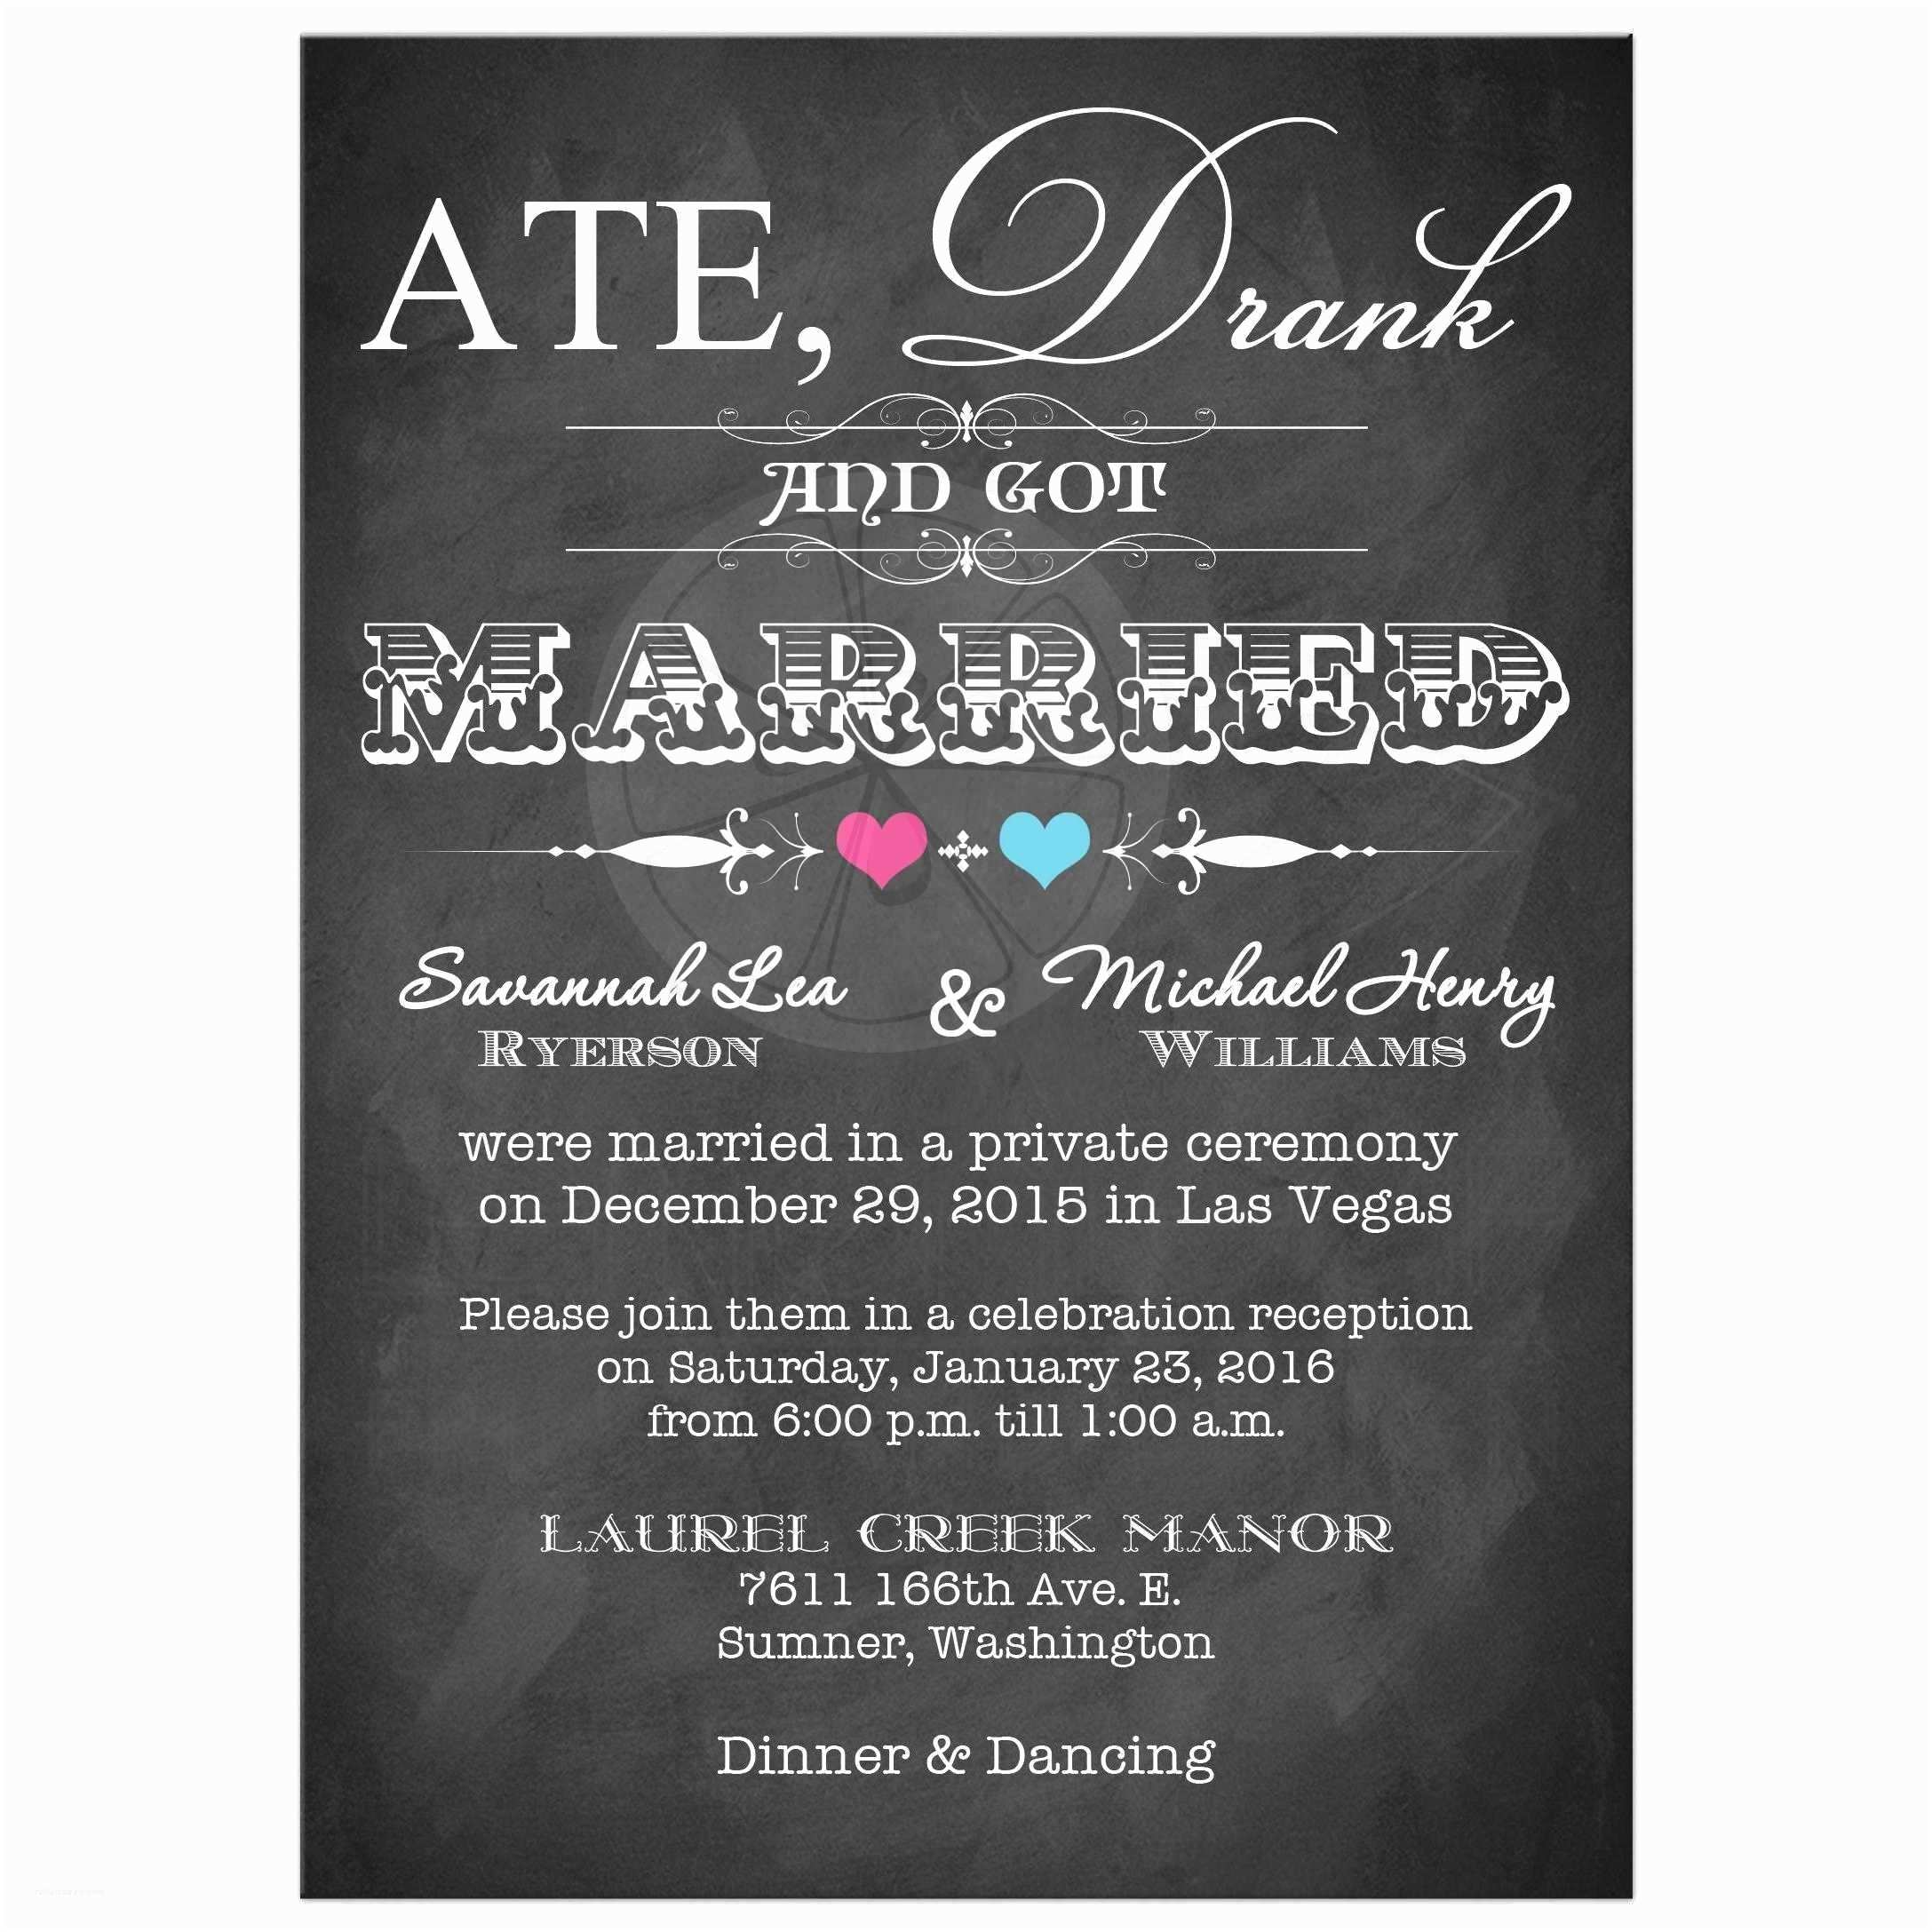 Reception Invites after Destination Wedding Invitation Wording for Party after Destination Wedding